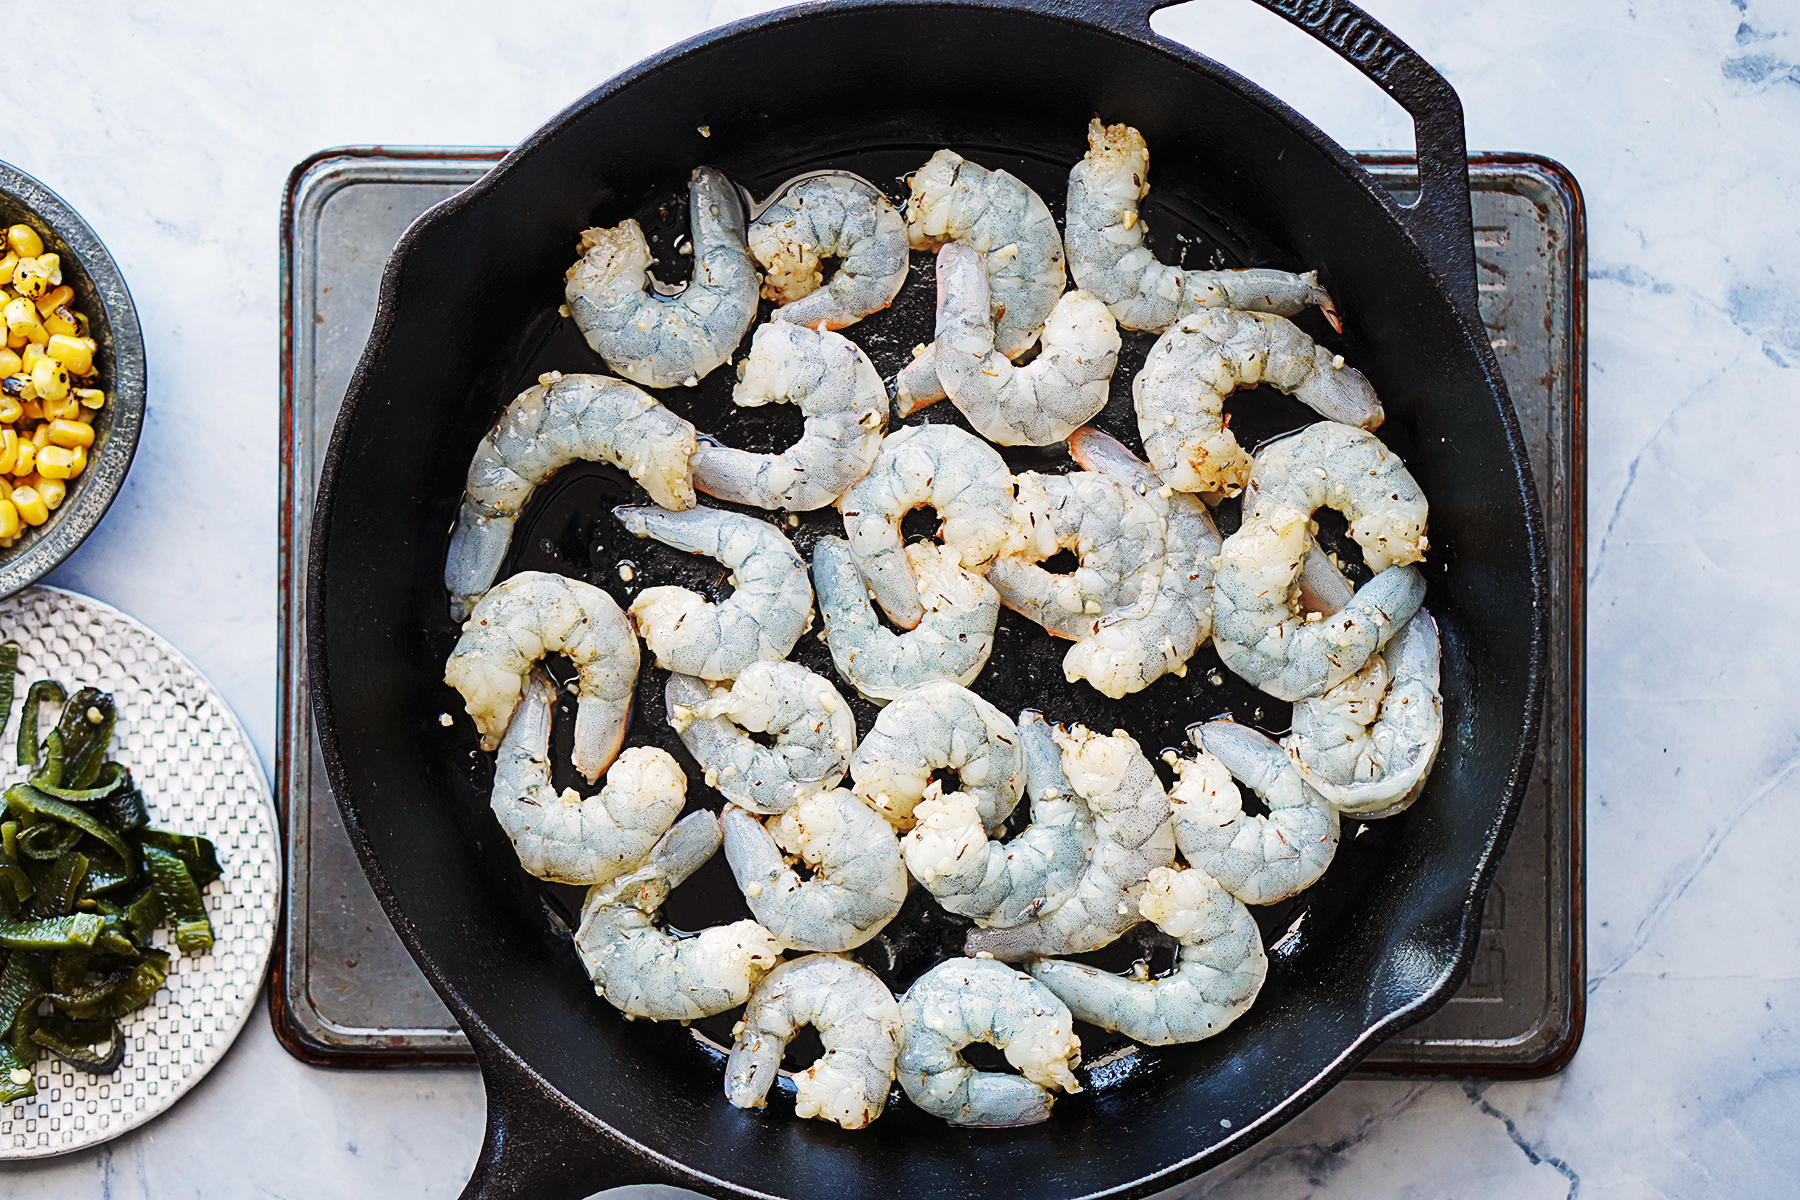 Cooking shrimp in a cast iron skillet